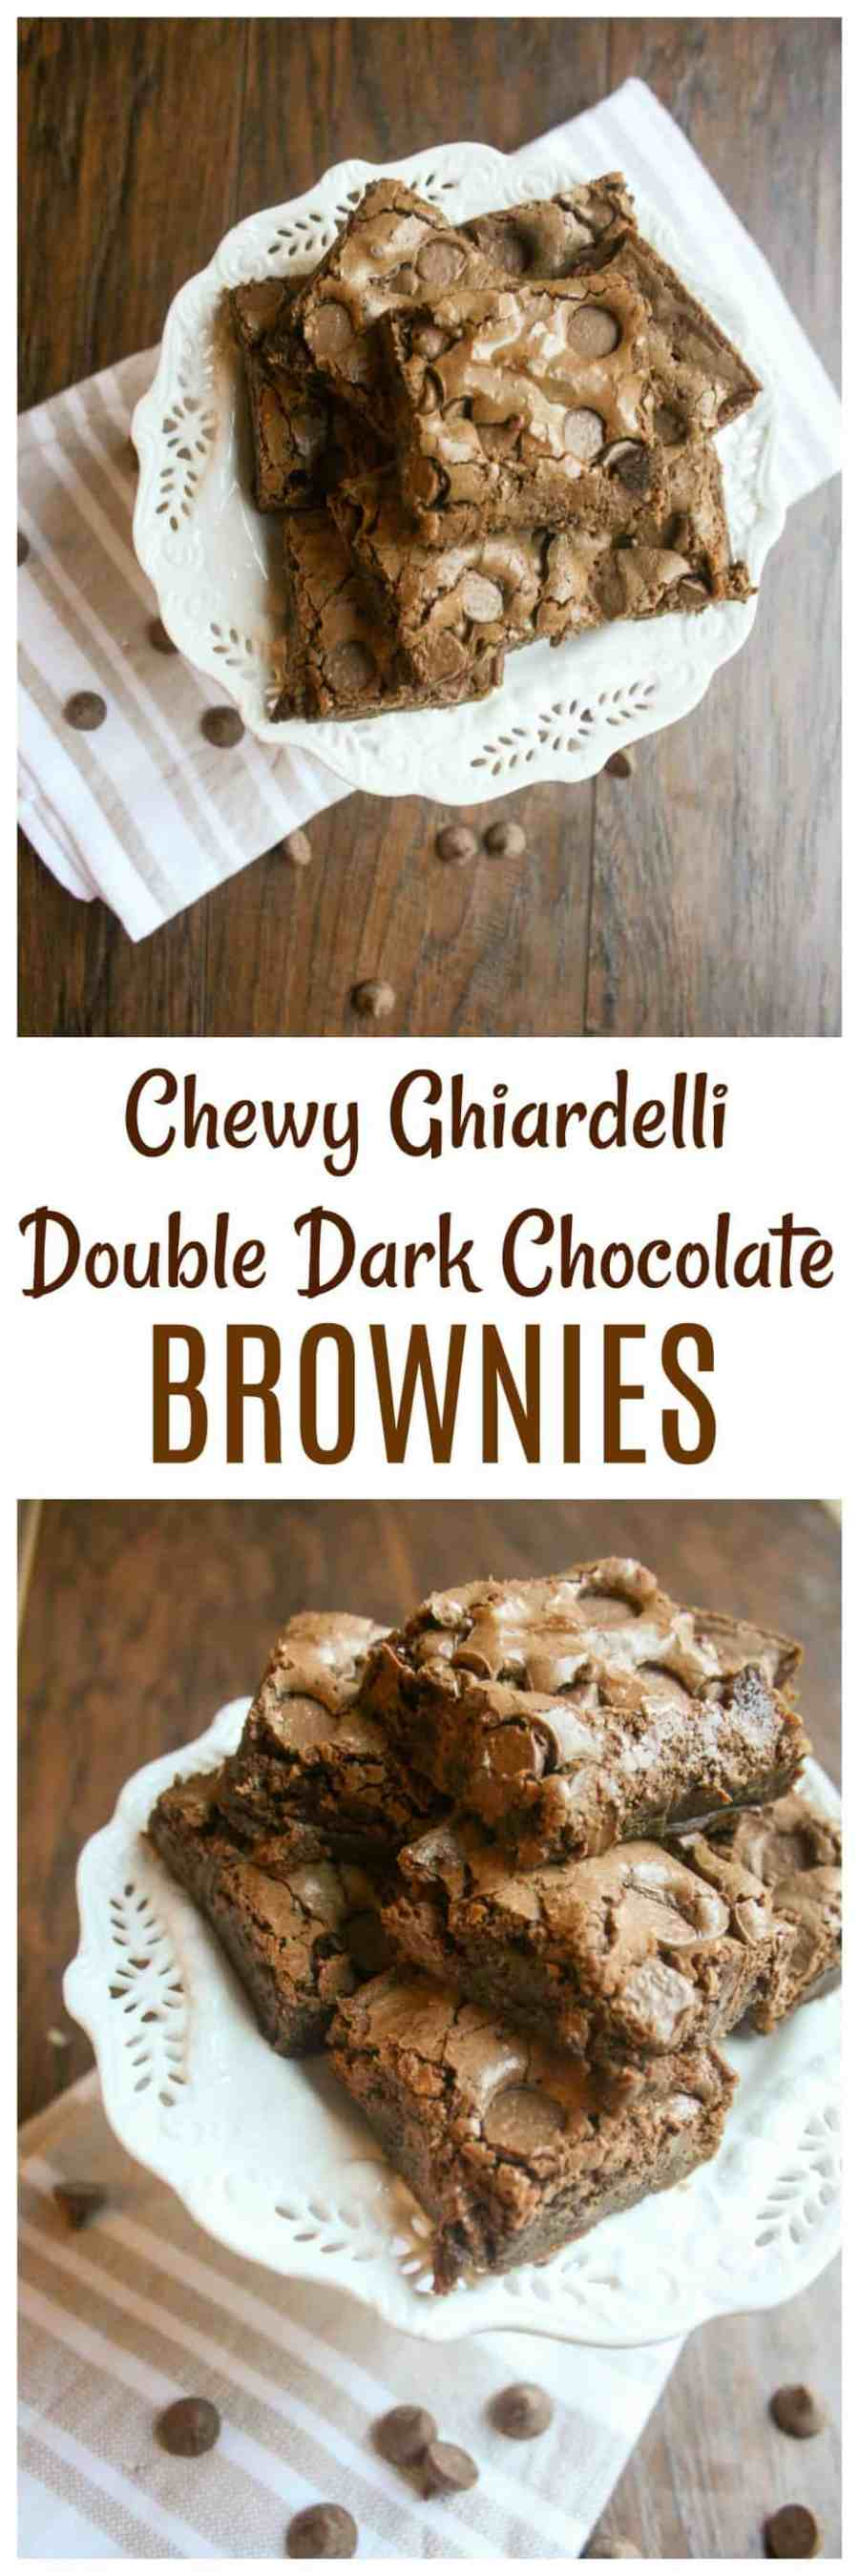 Double dark chocolate chip brownies are the perfect afternoon pick me up. Chock full of delicious, luscious chocolate, you won't be able to eat only one of these!